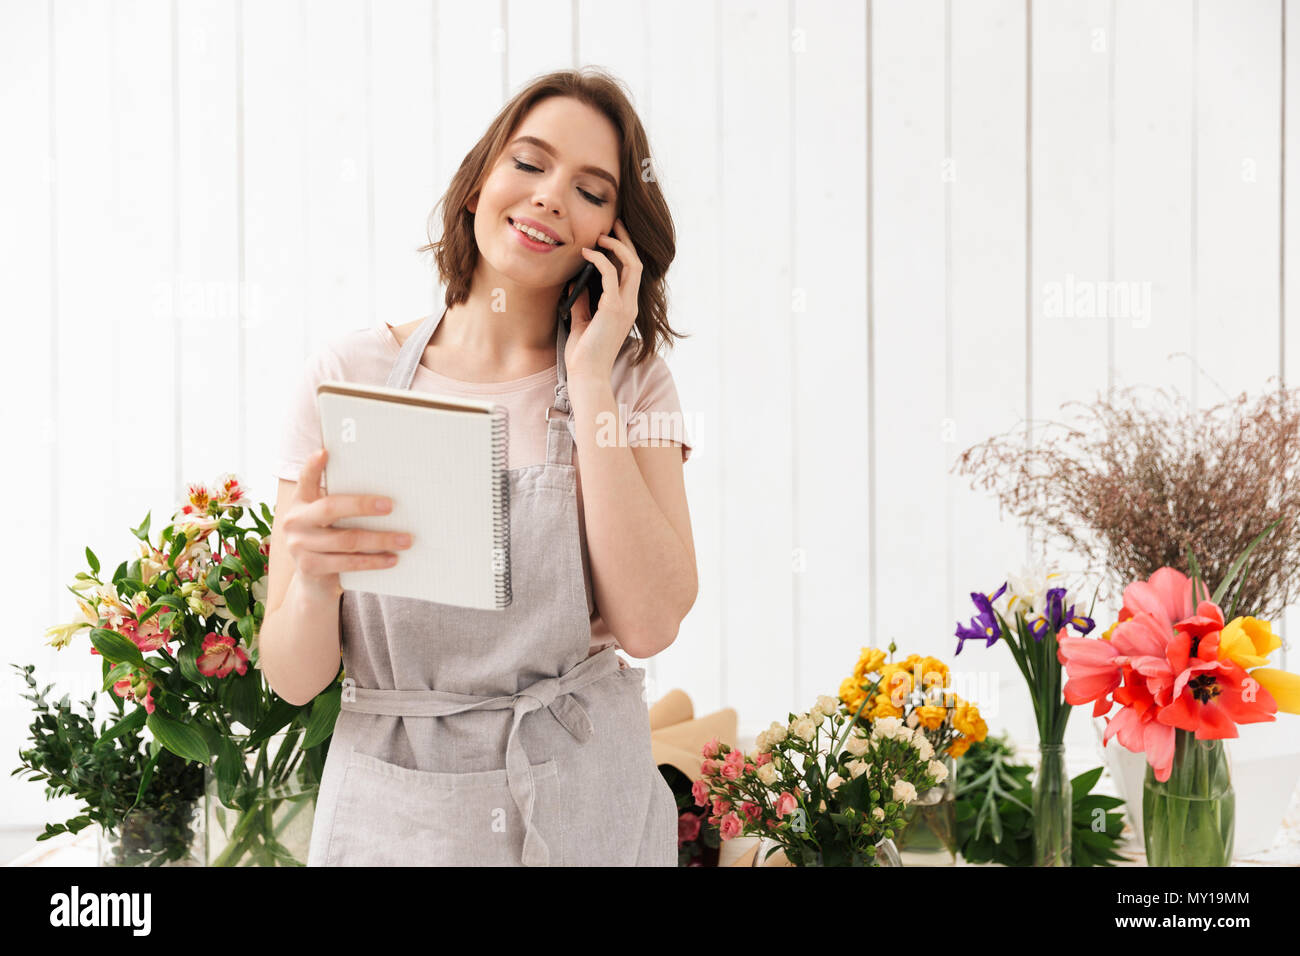 Young florist woman standing near table with different flowers in studio and calling to clients with notes in hand - Stock Image